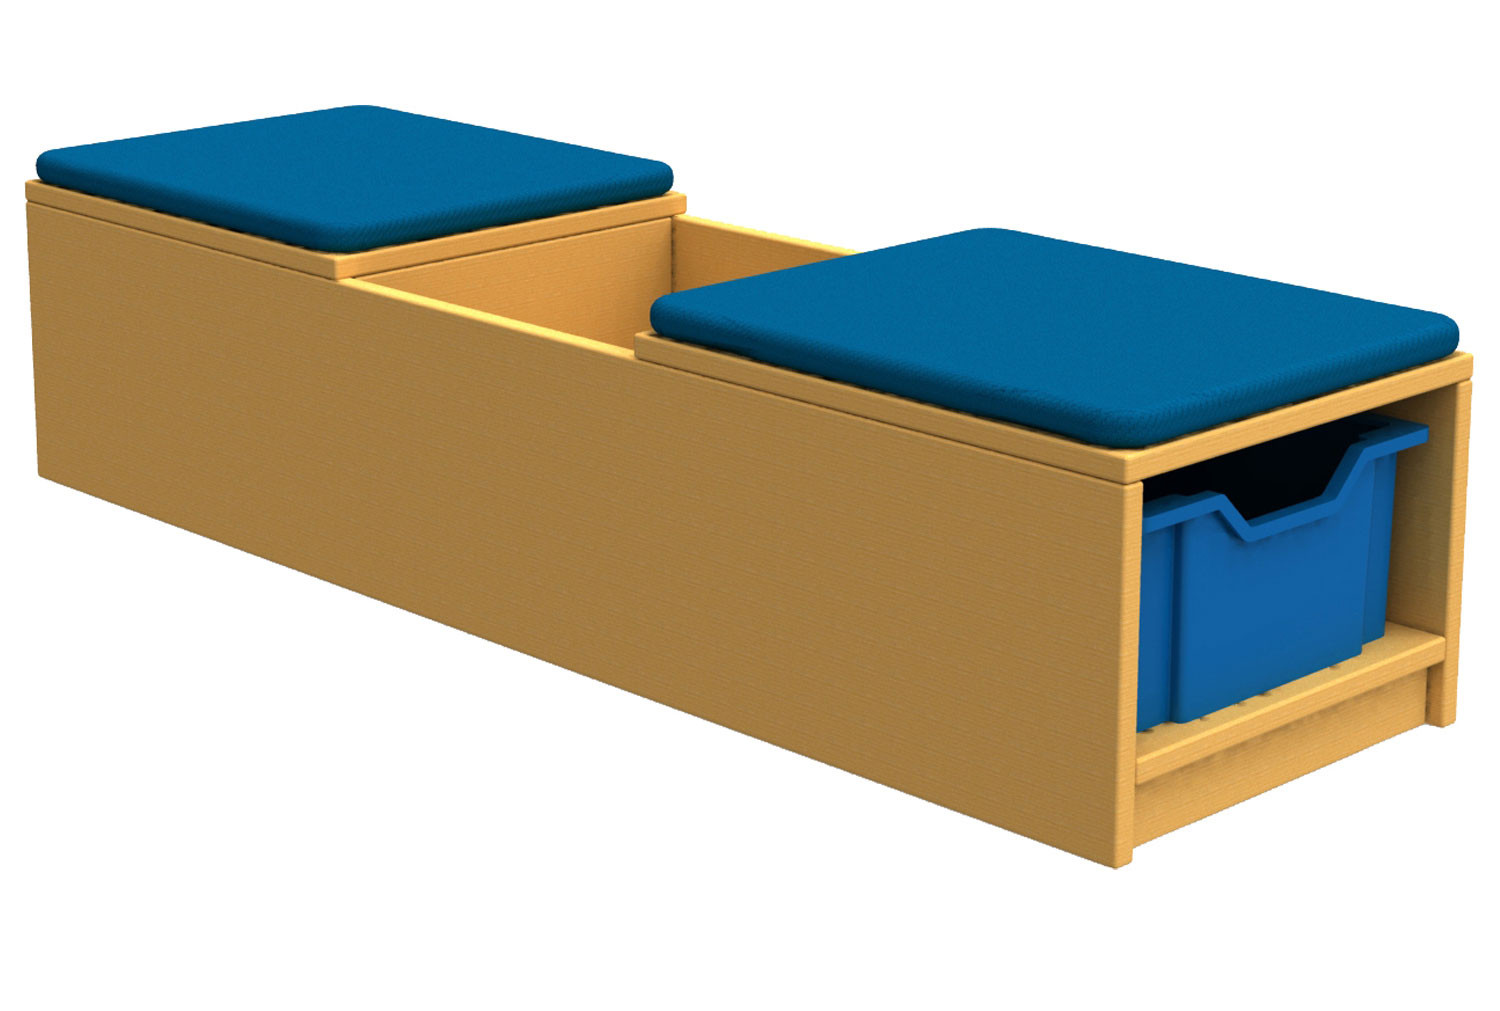 Arc Book Storage And Seating Unit With 2 Trays